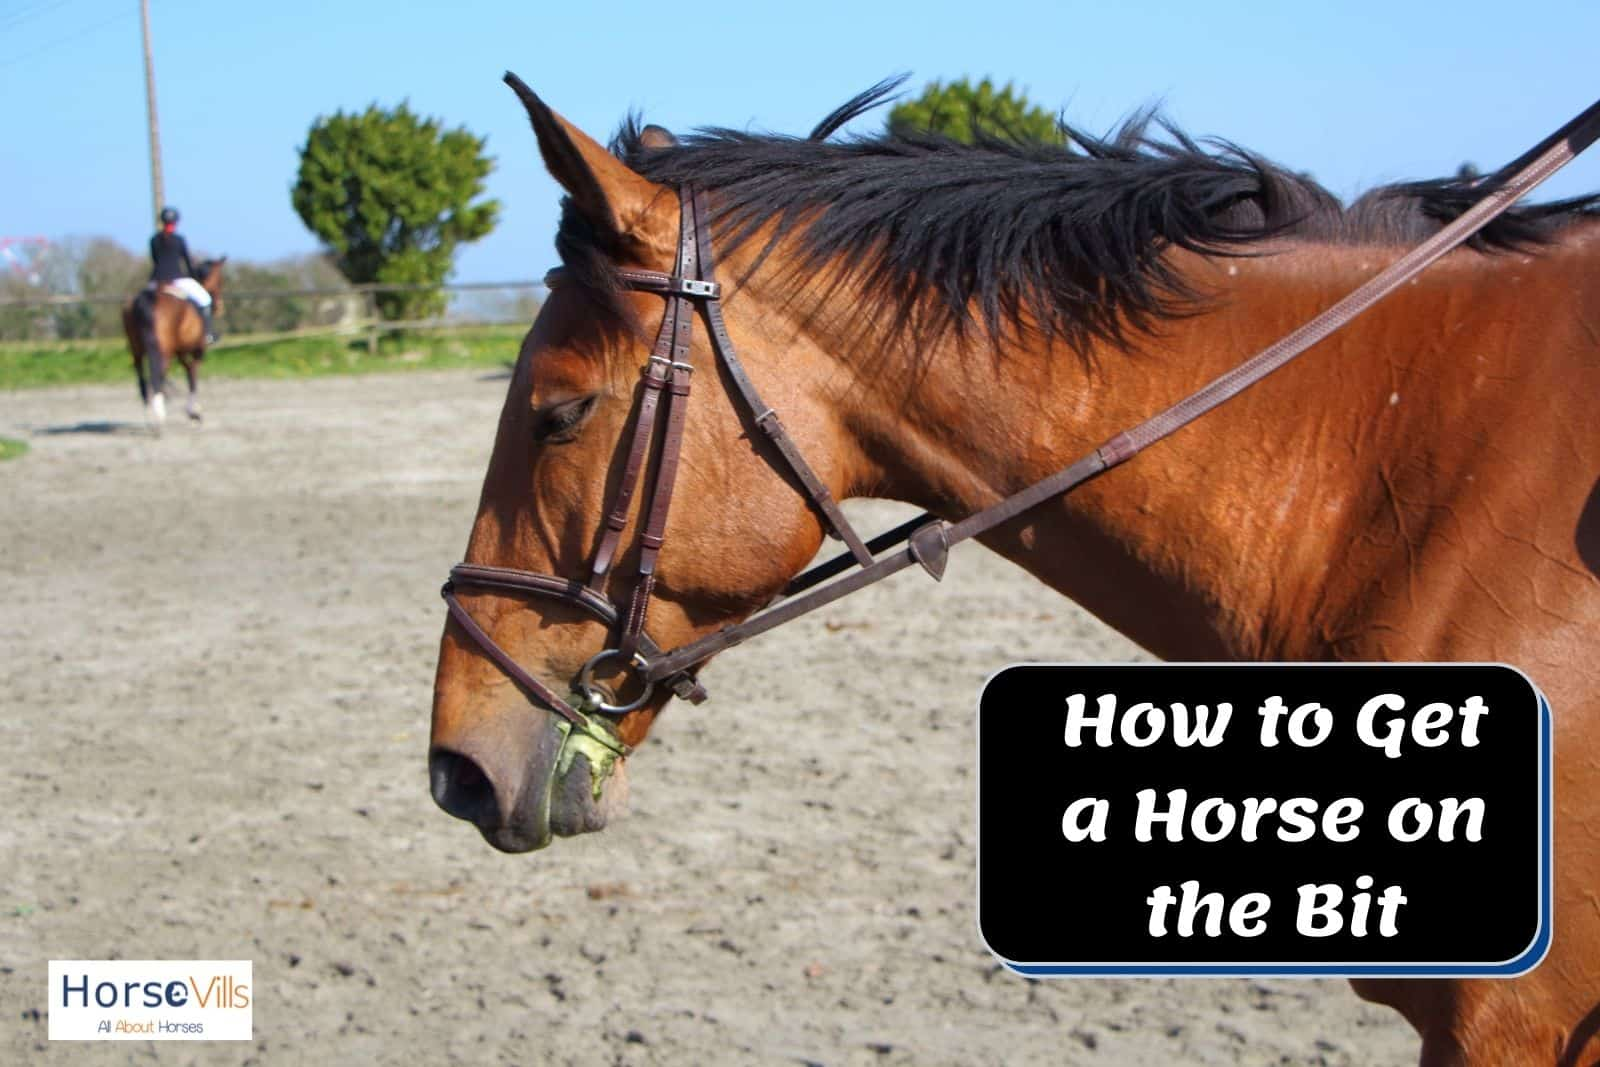 how to get a horse on the bit? this brown horse is wearing bit